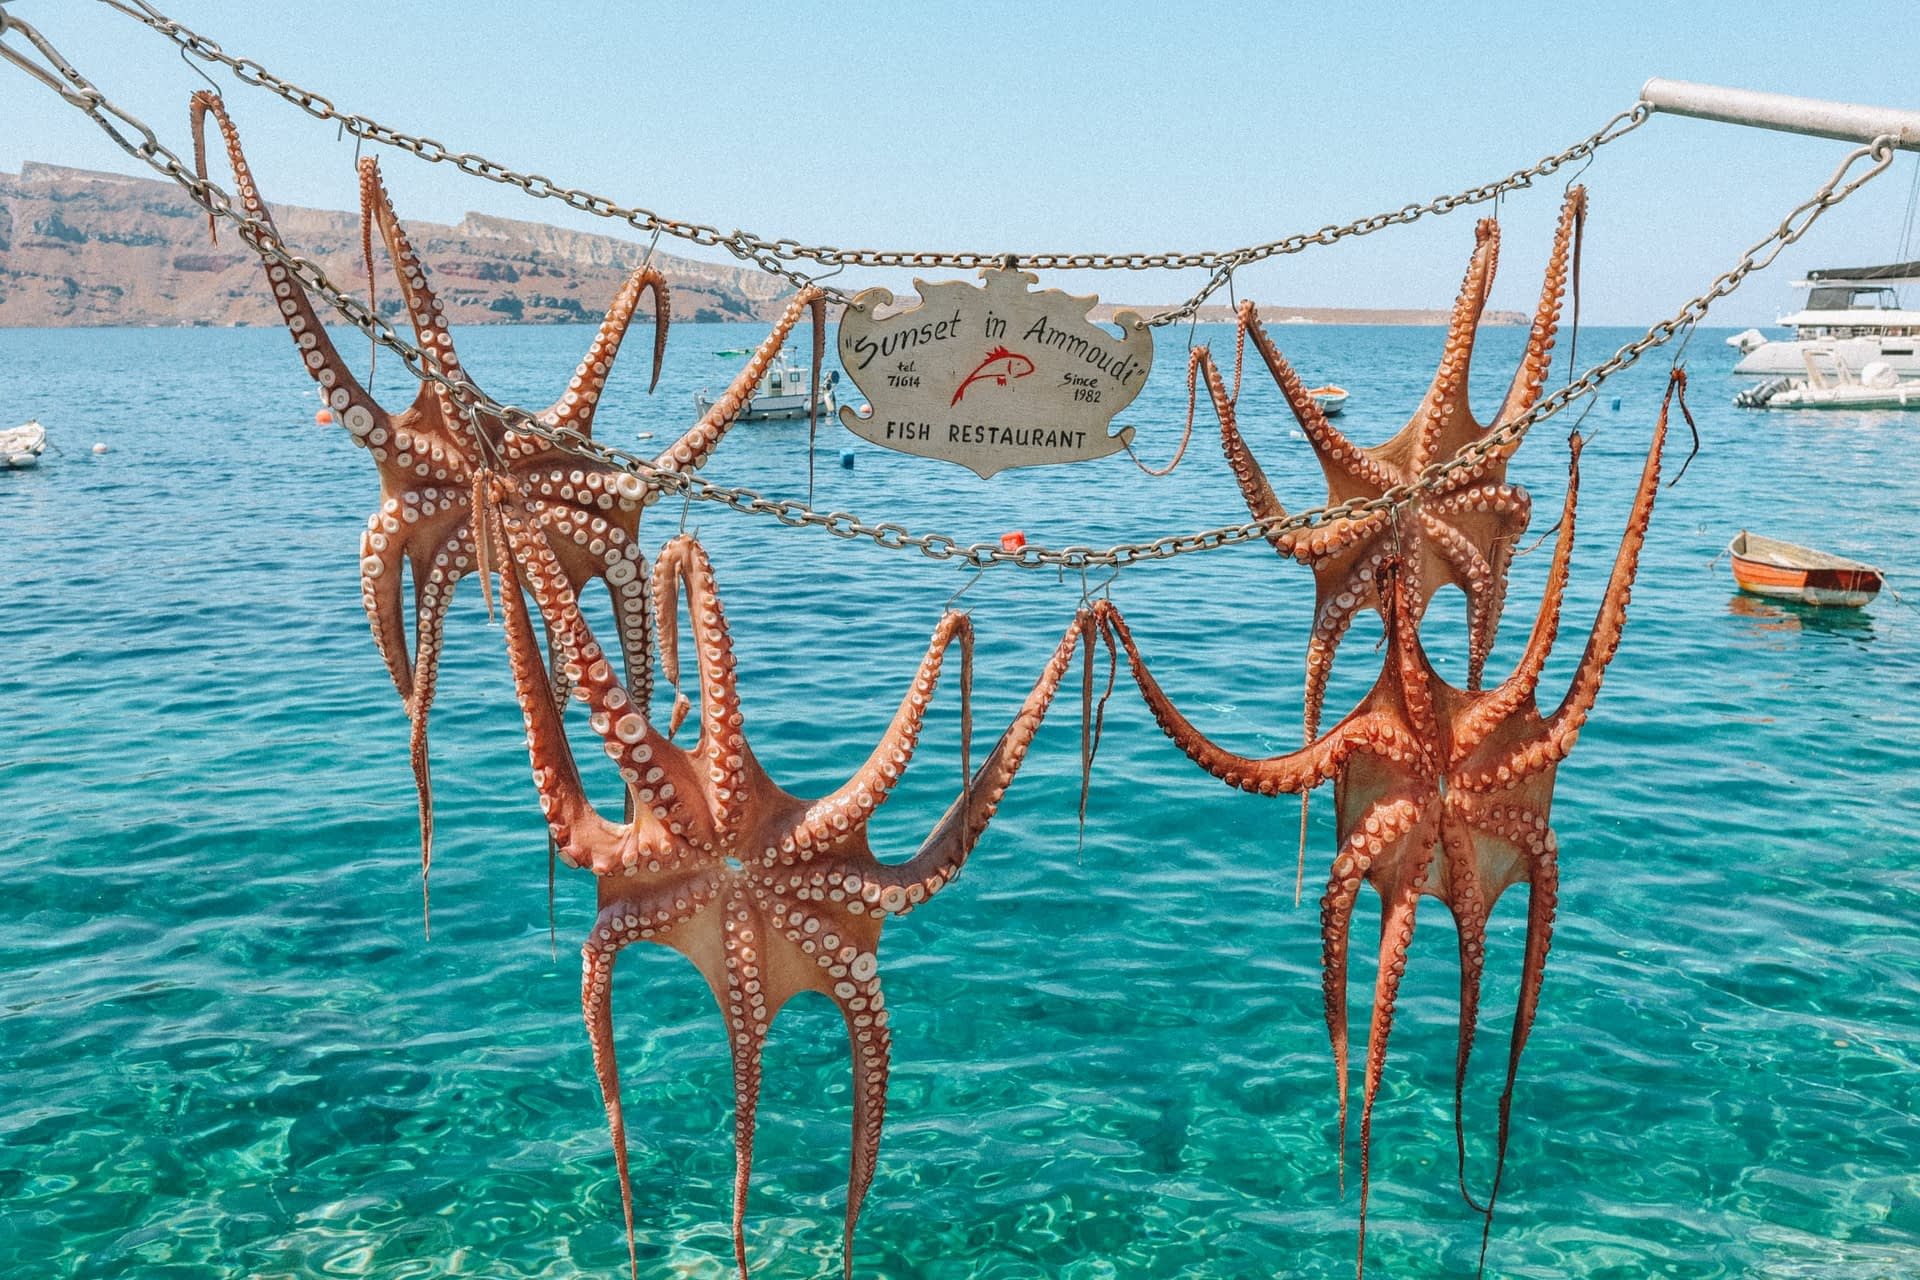 Octopuses drying out before being ready to be eaten with turquoise waters in the background